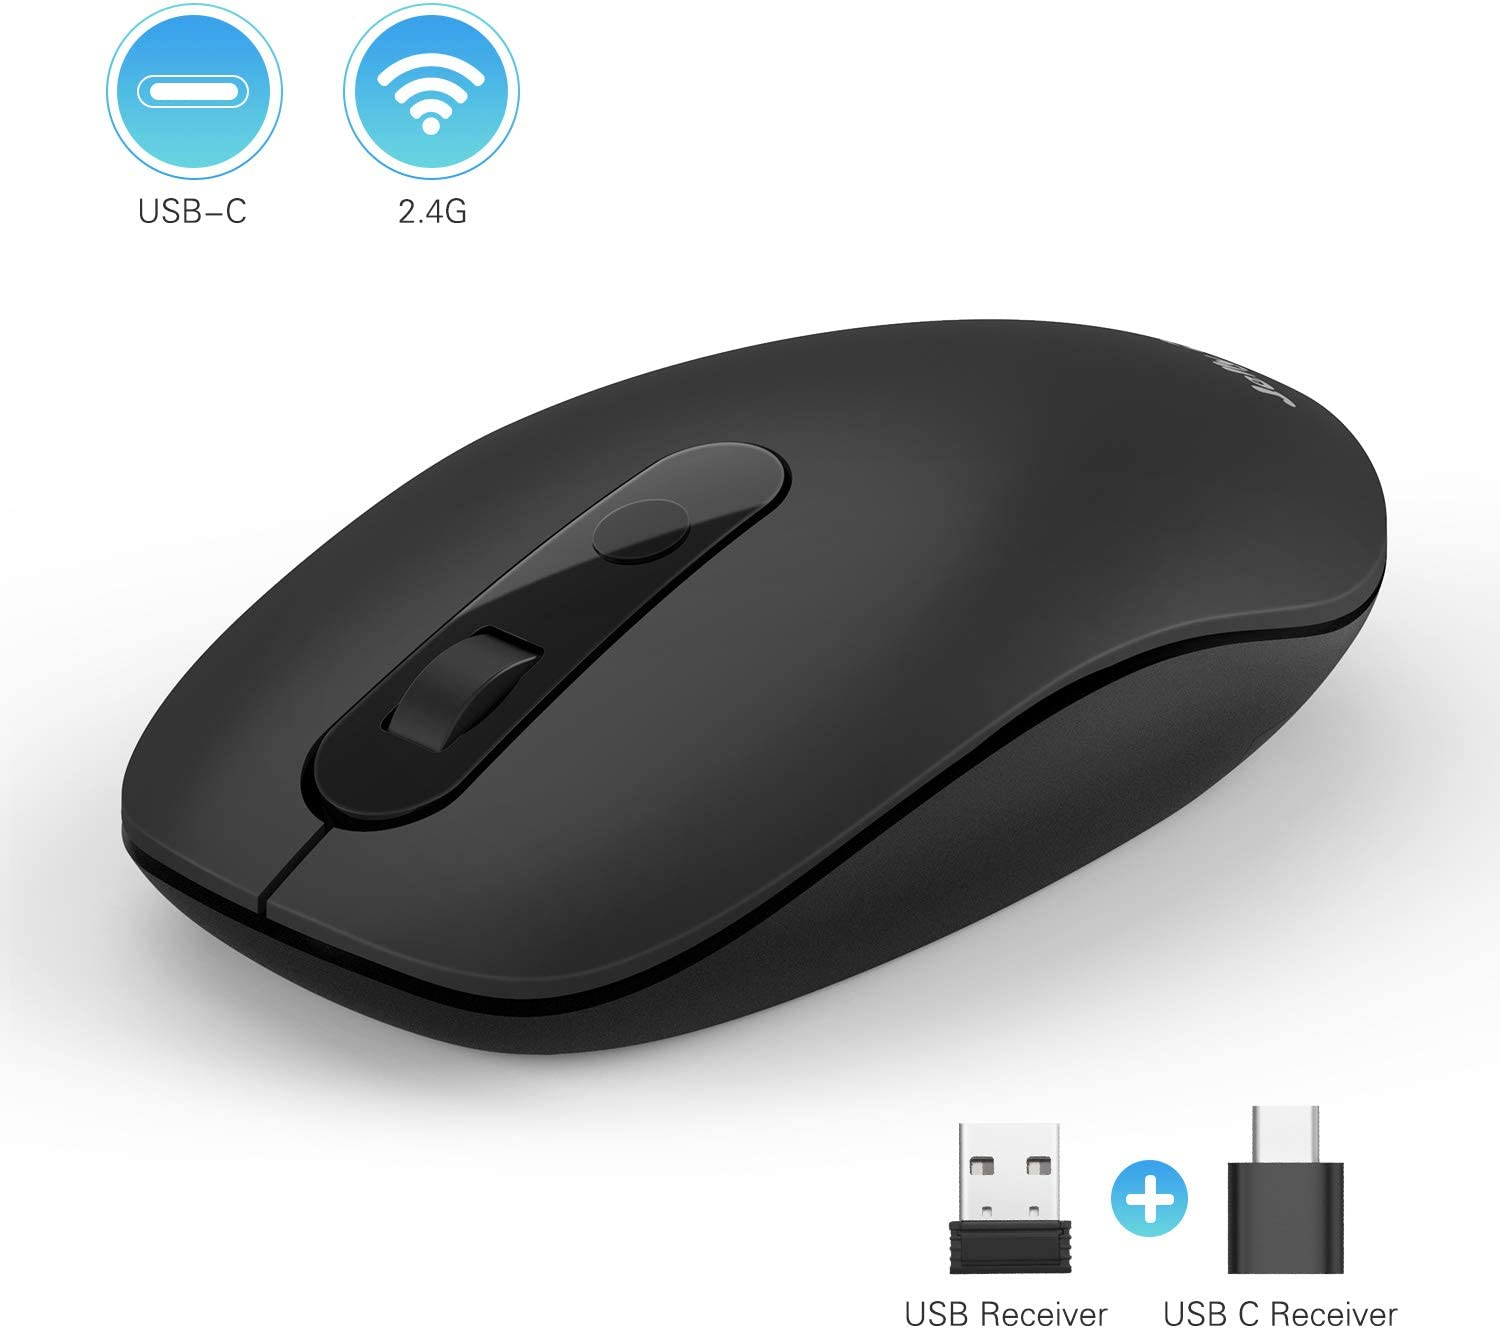 Type C Wireless Mouse, Jelly Comb 2.4G Wireless Mouse USB C Computer Cordless Mice with USB and Type C Receiver Compatible with Notebook, Computer, PC, Laptop, Computer, MacBook and all Type-C Device